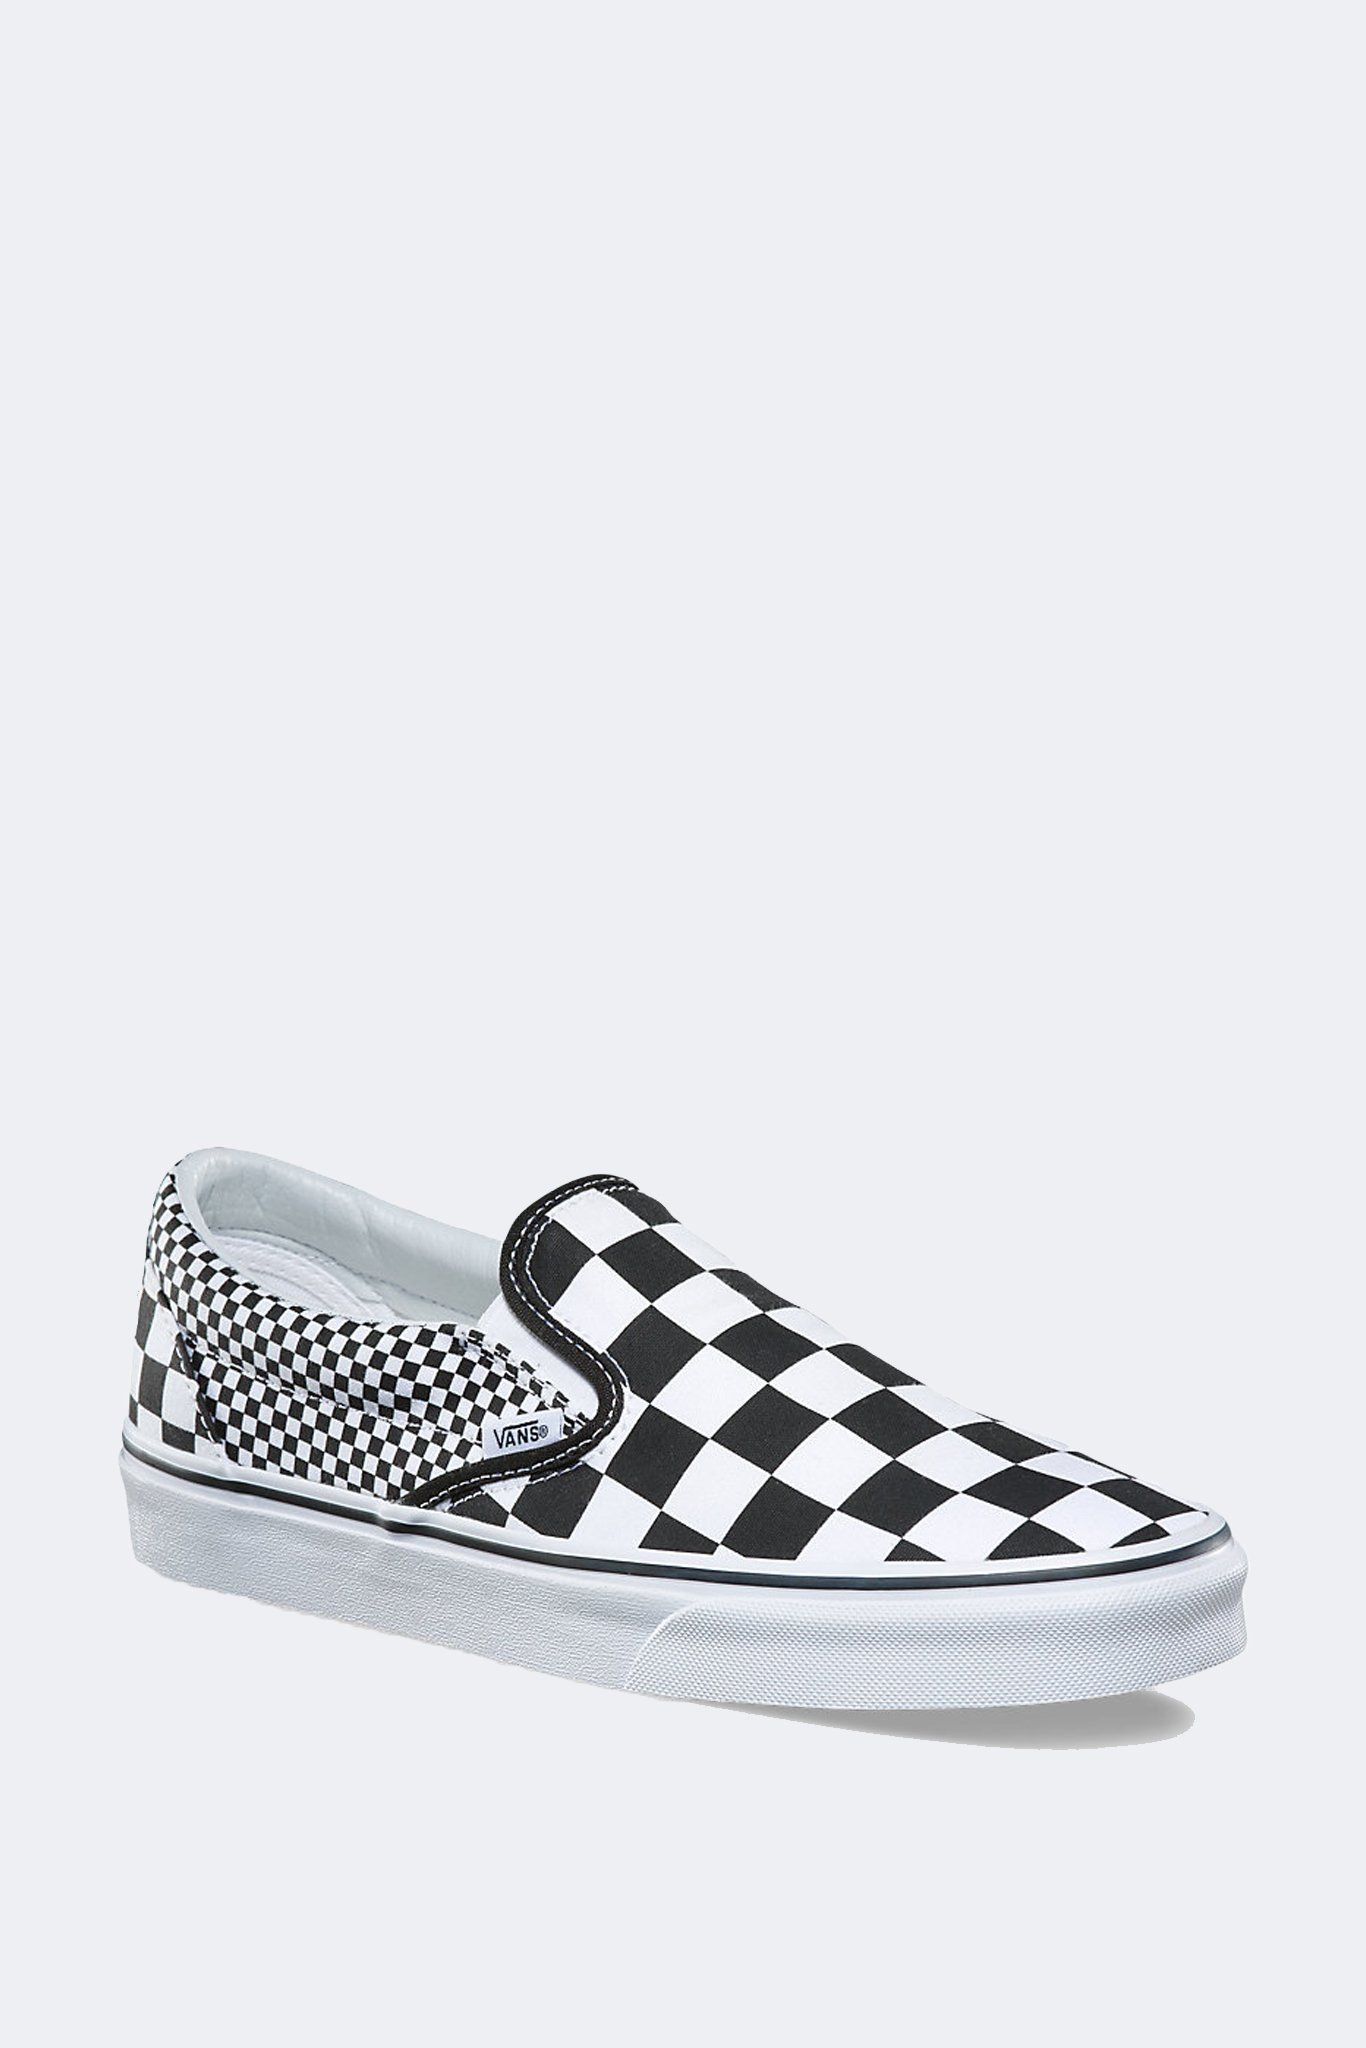 a67b22a588c Classic Slip-on in mix checker from Vans. Sturdy Vans low profile slip-on  canvas uppers with the iconic Vans checkerboard print